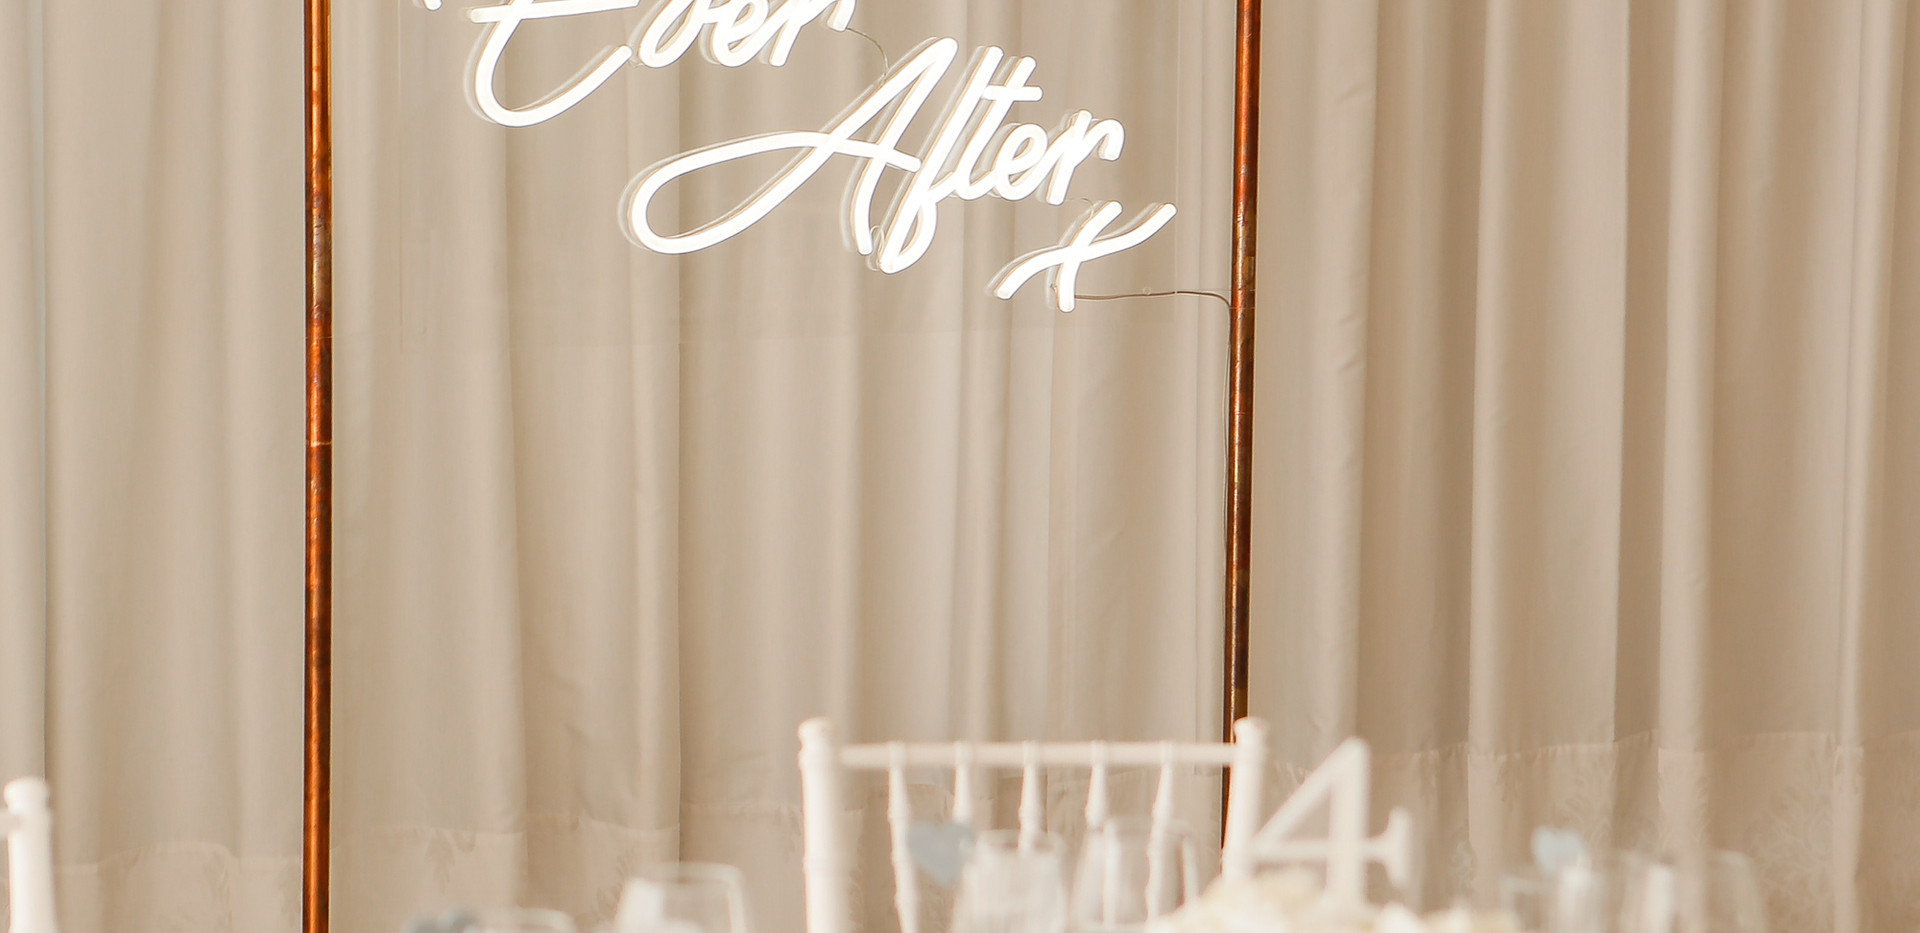 ILLUMINOGRAPHY - Happily Ever After Neon